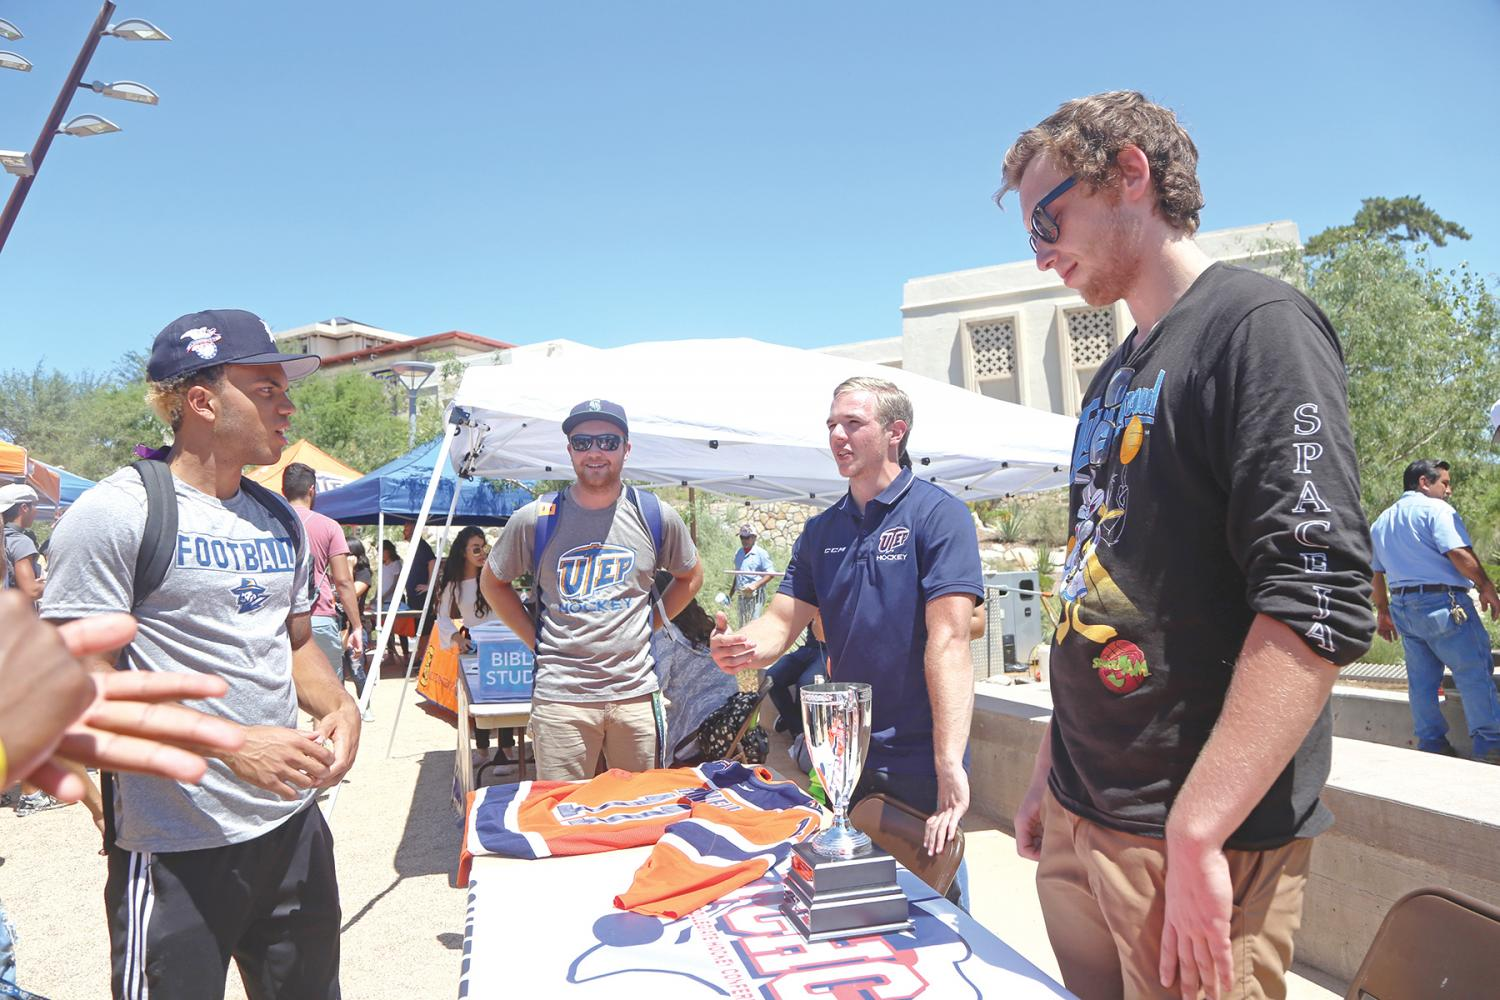 Students+got+to+talk+to+the+UTEP+Hockey+club+as+well+as+other+clubs+and+organizations.